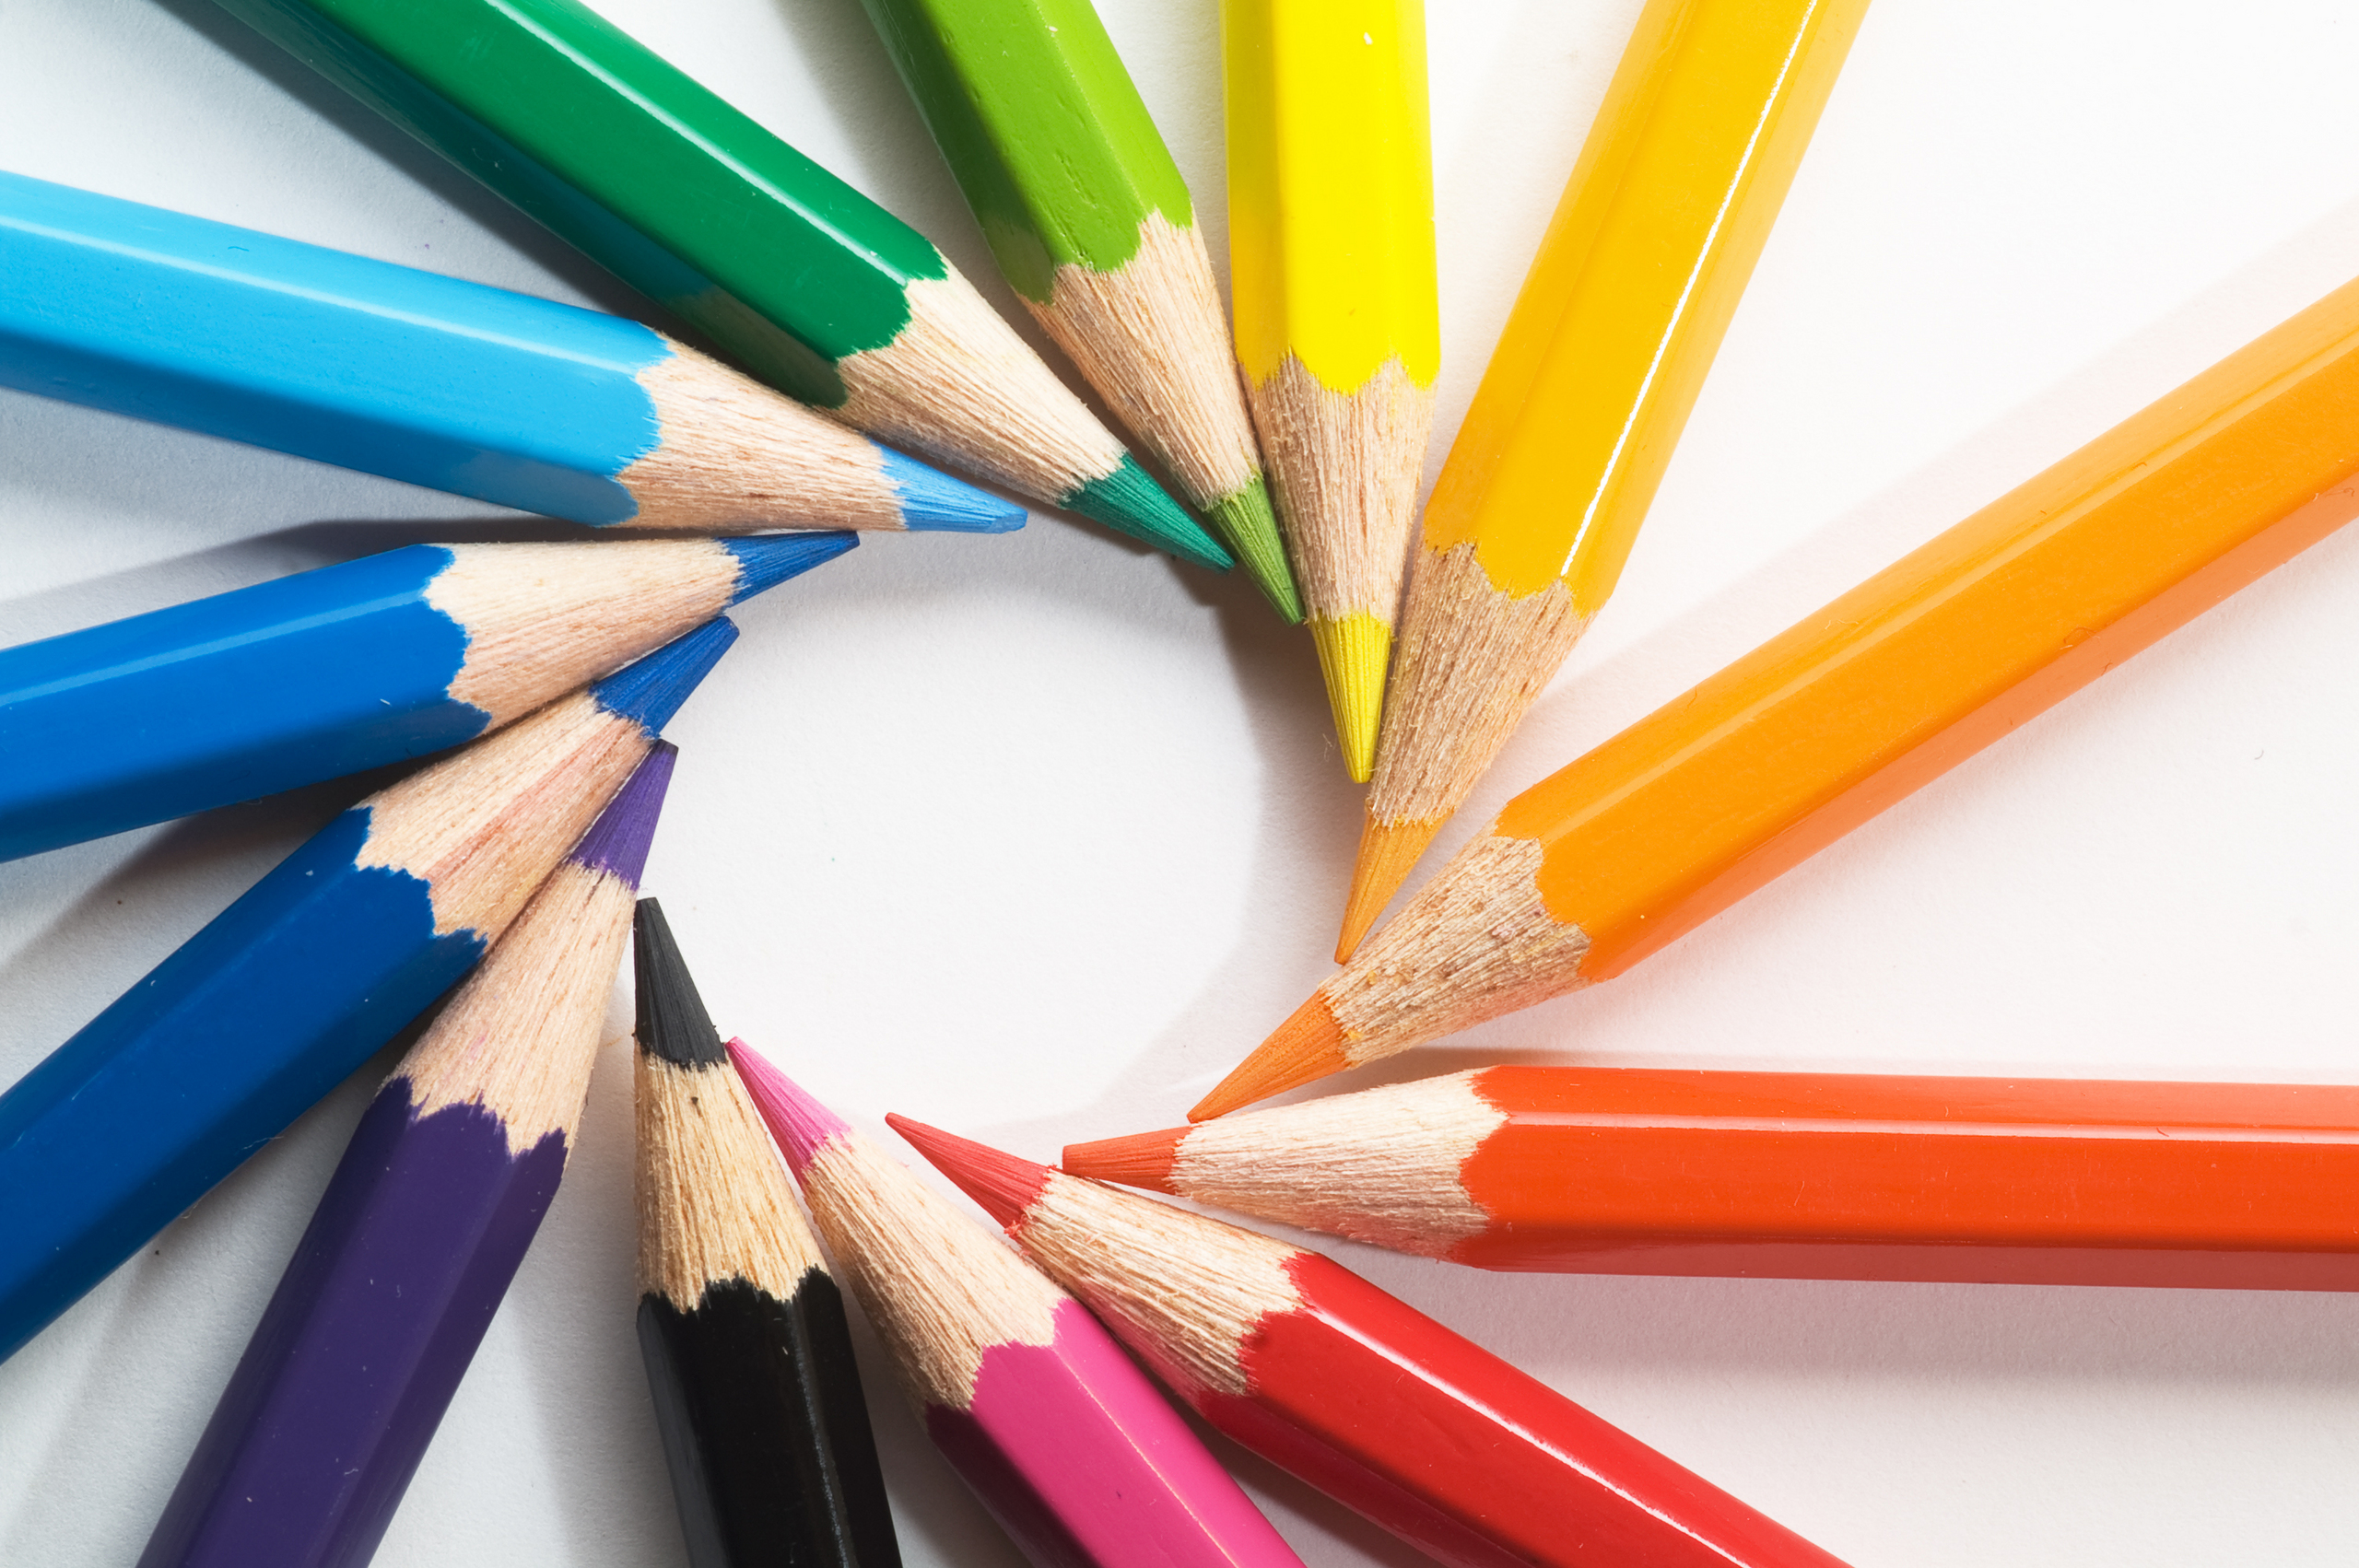 Pencils images Colored pencils HD wallpaper and background photos ...